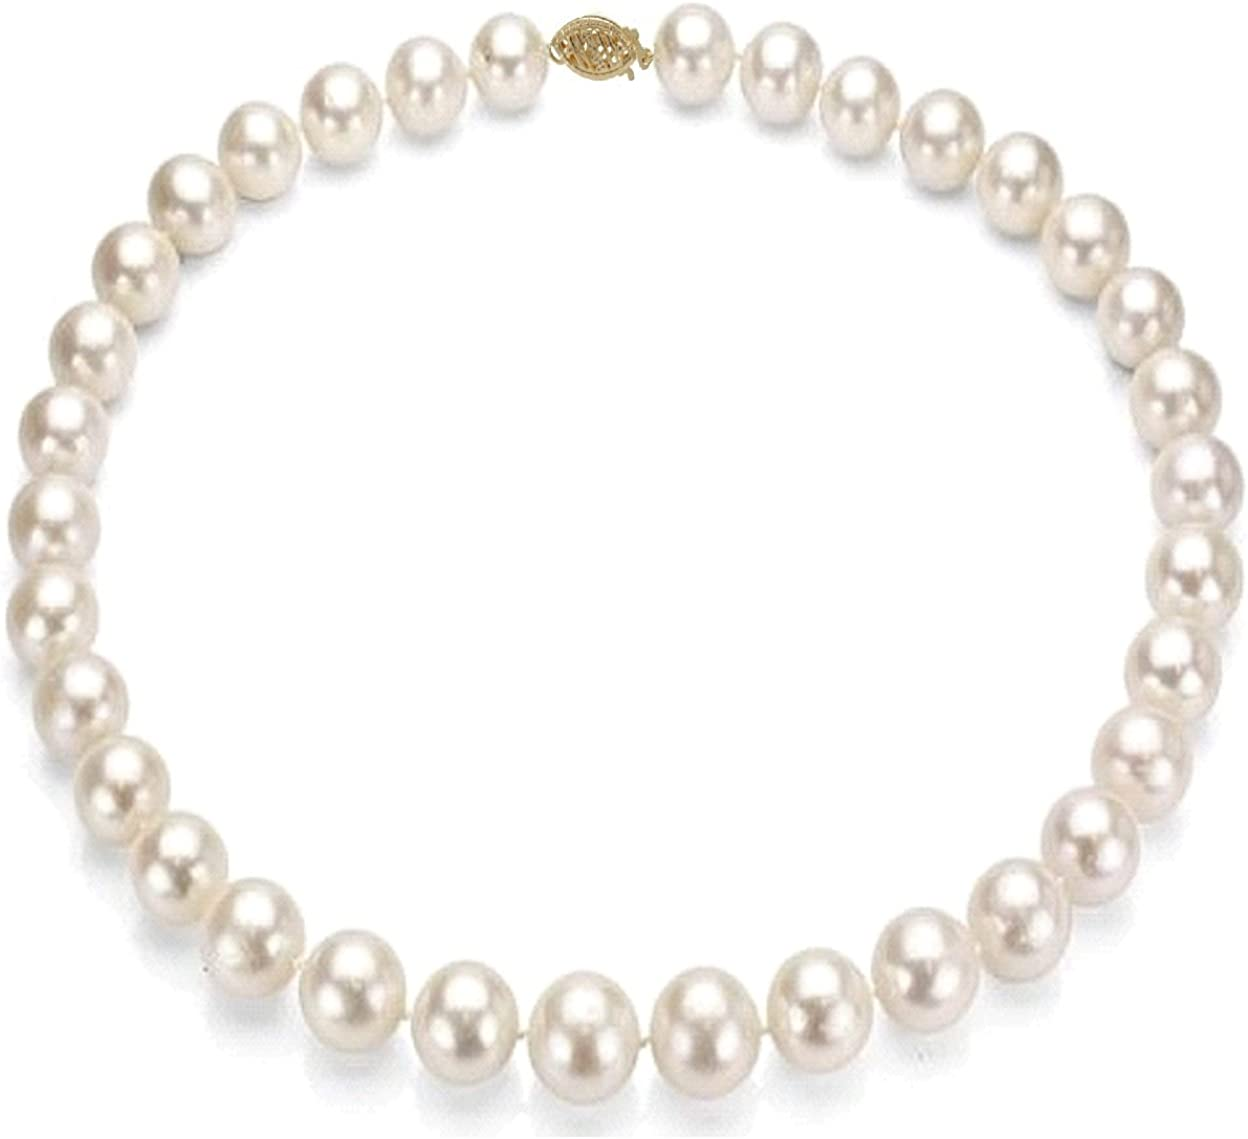 14k Gold 8-9mm White Freshwater Cultured Pearl Necklace